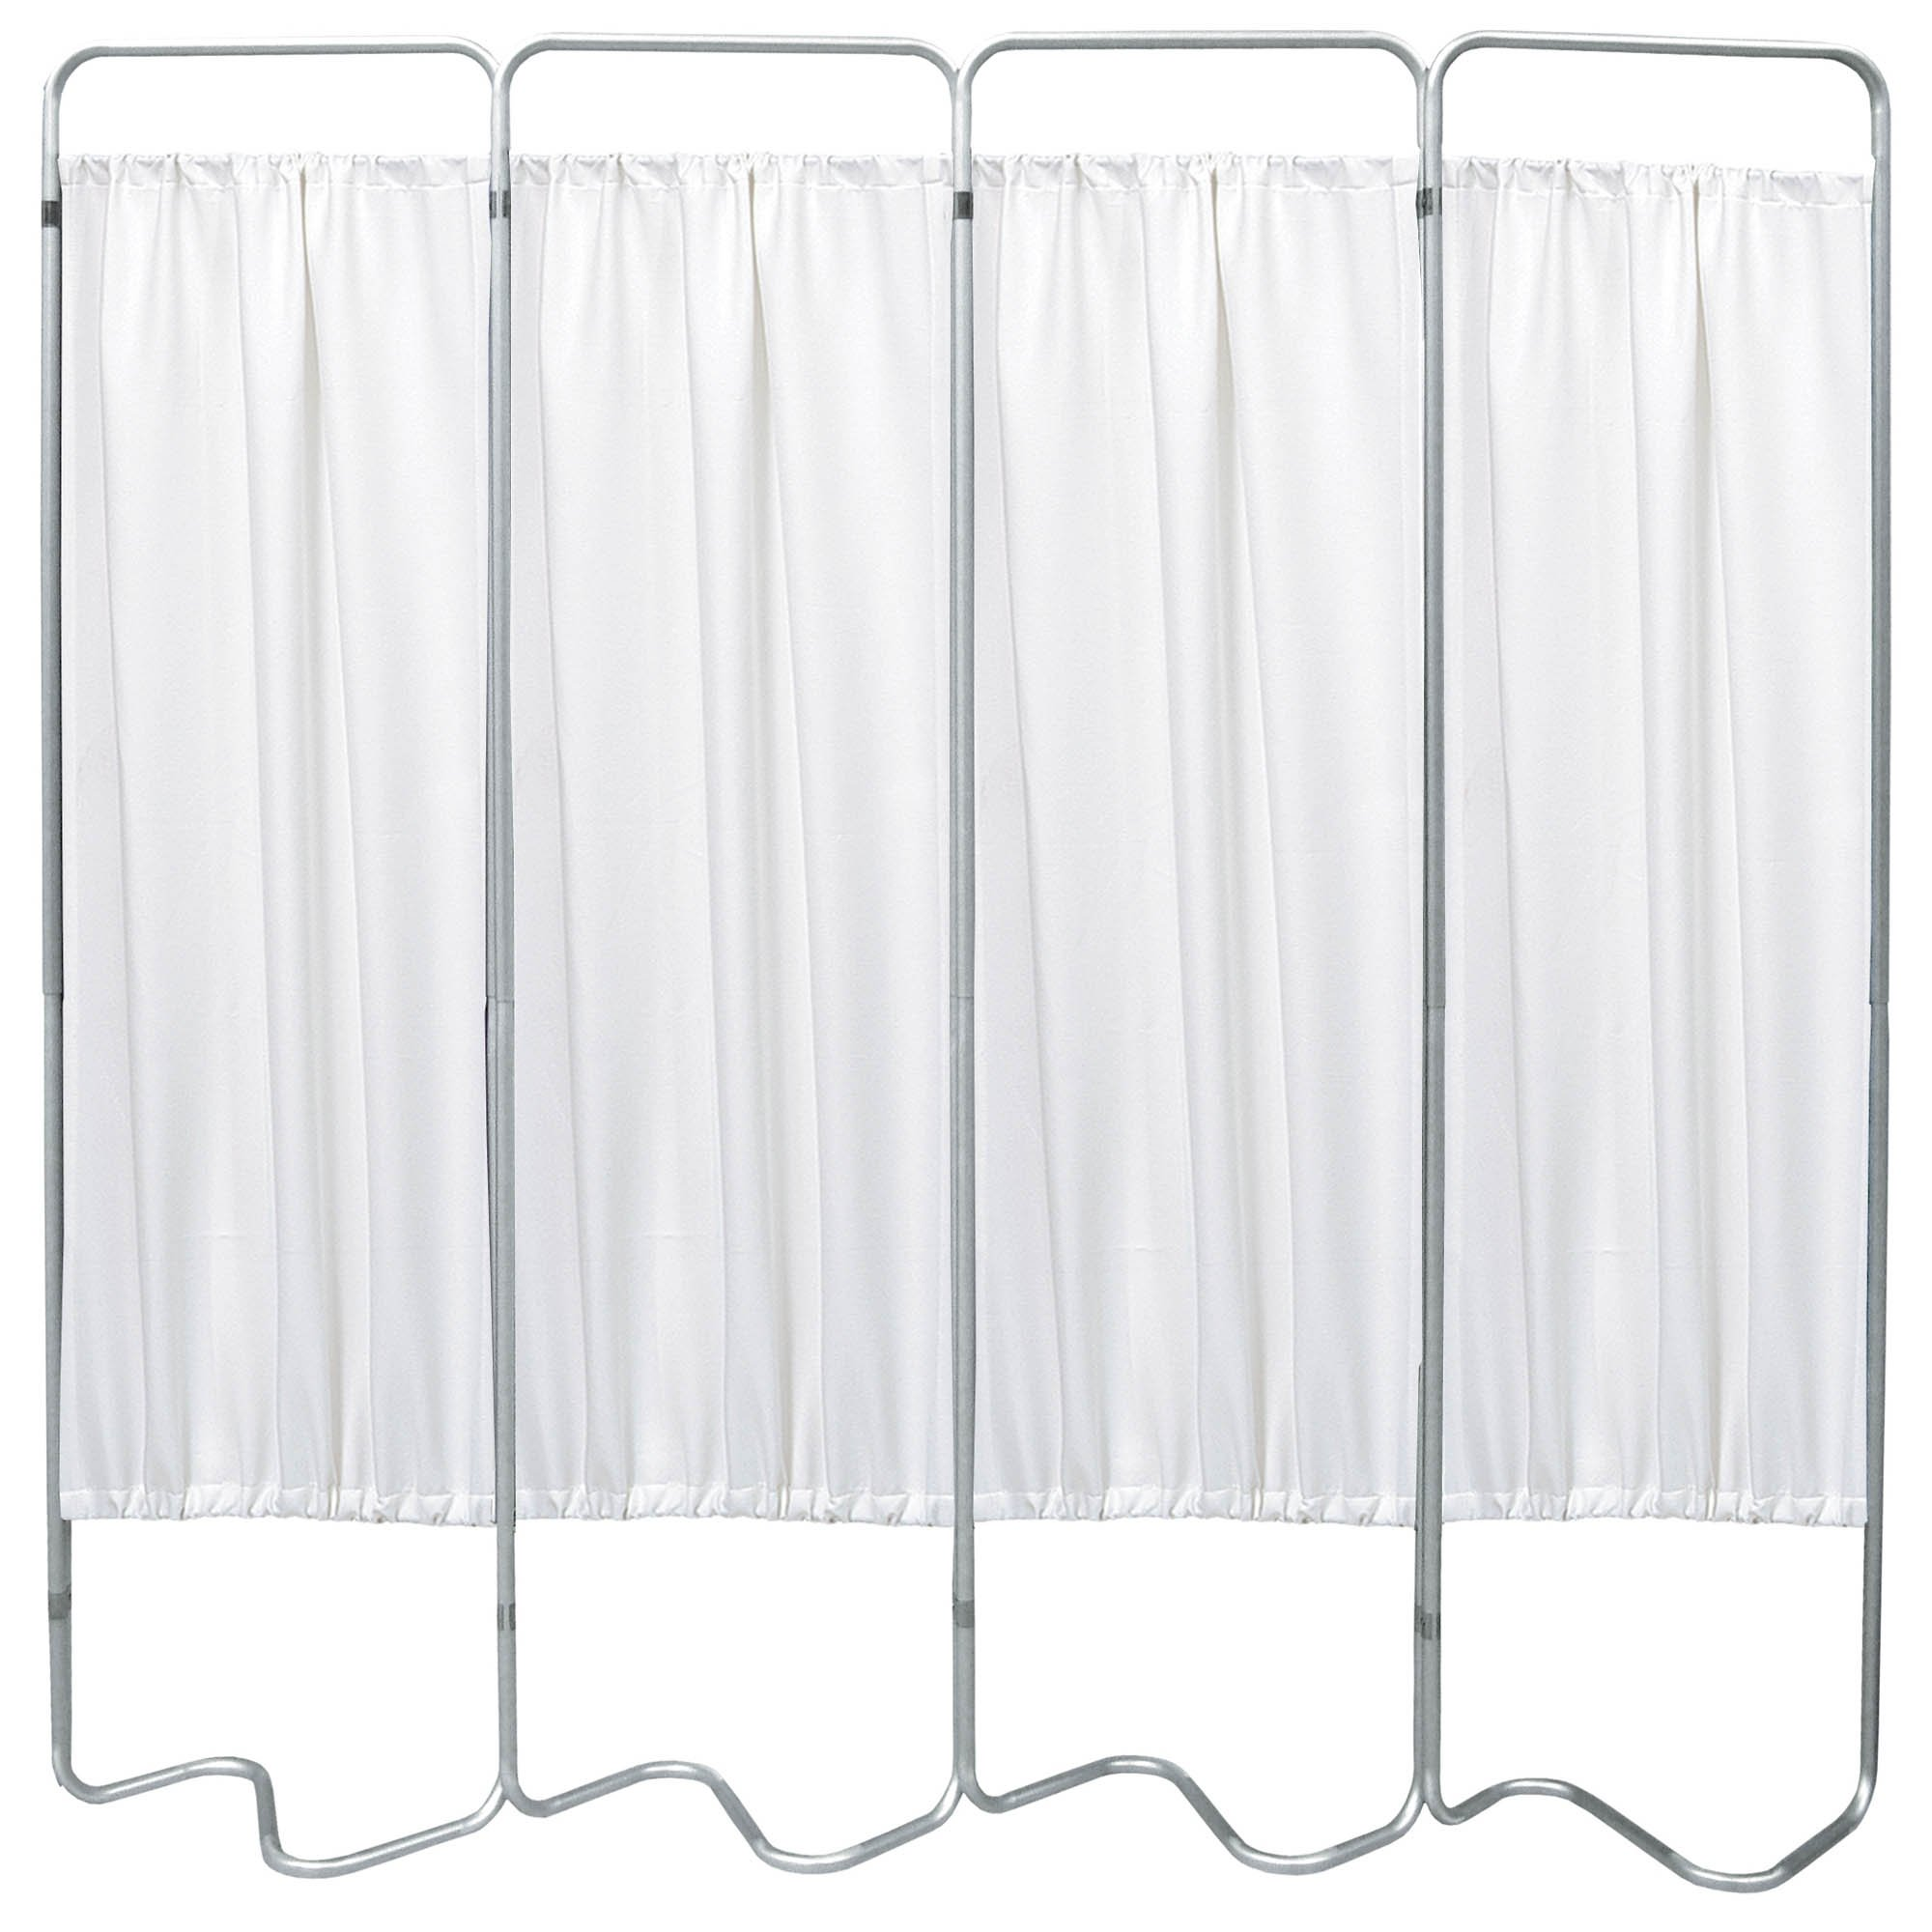 Beamatic 4 Section Folding Privacy Screen - White Vinyl Screen Panel